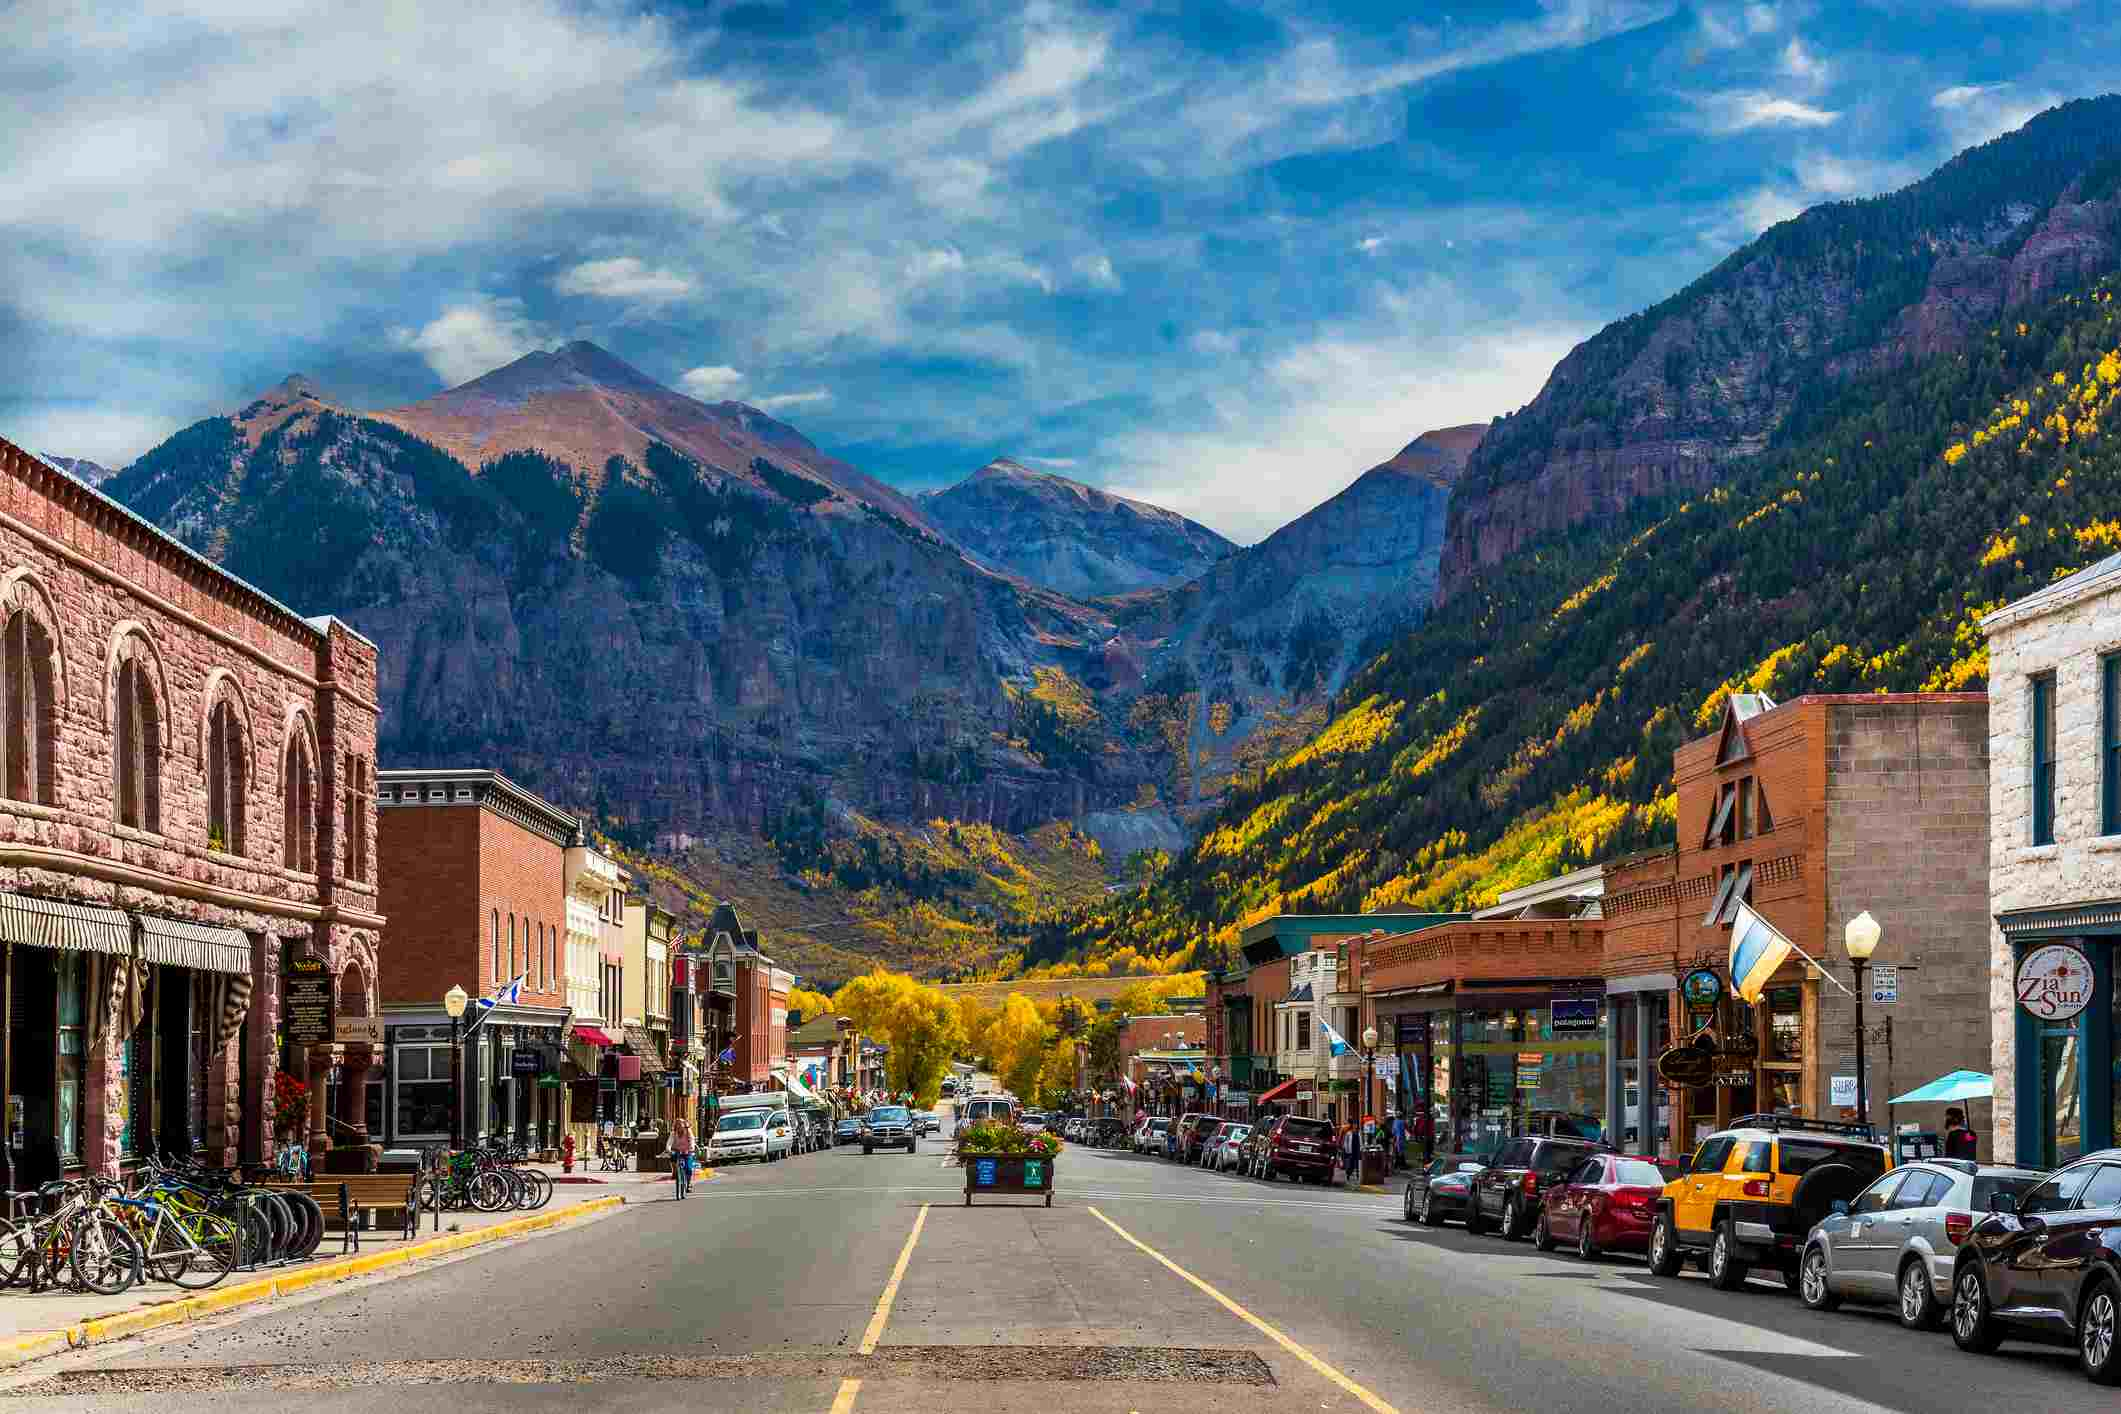 Downtown Telluride in fall